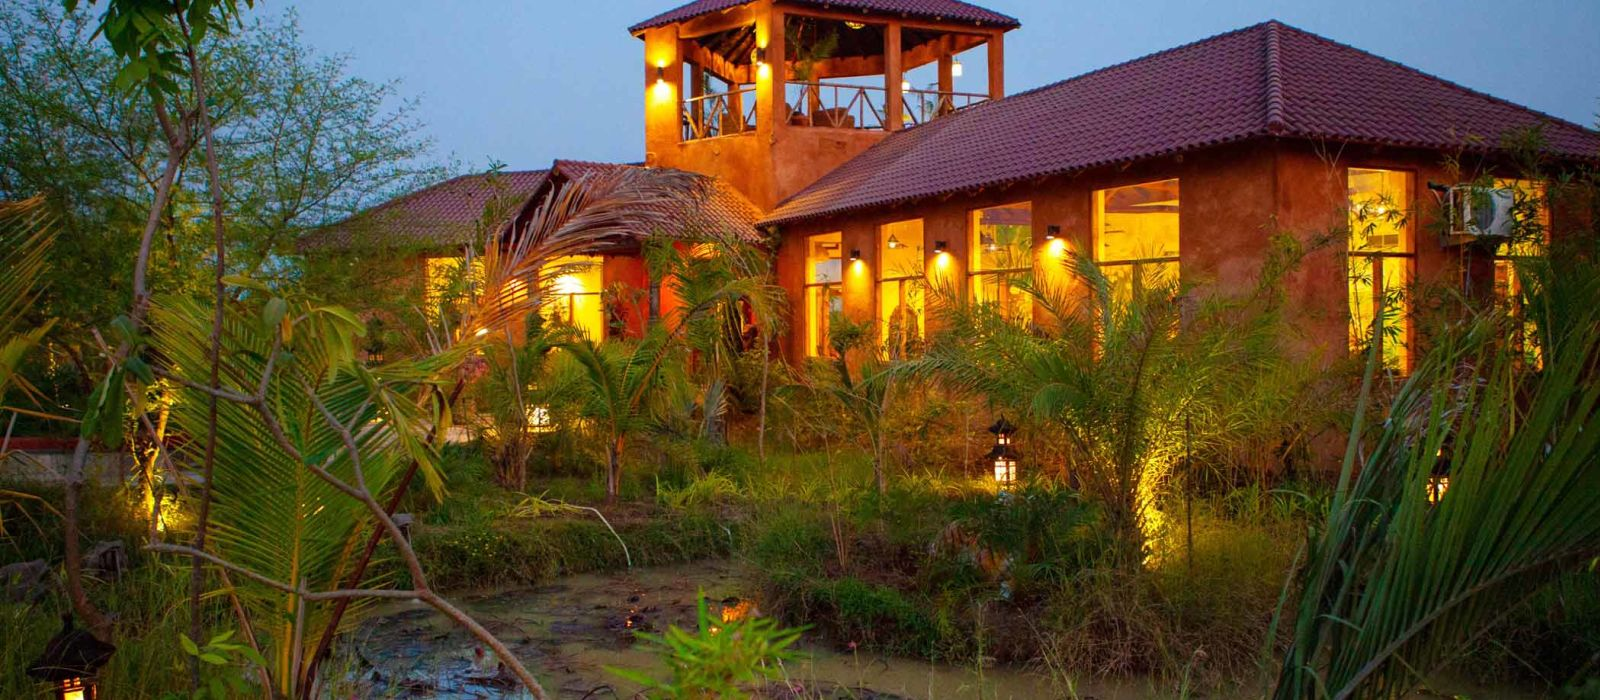 Hotel The Bamboo Forest Safari Lodge Zentral- & Westindien